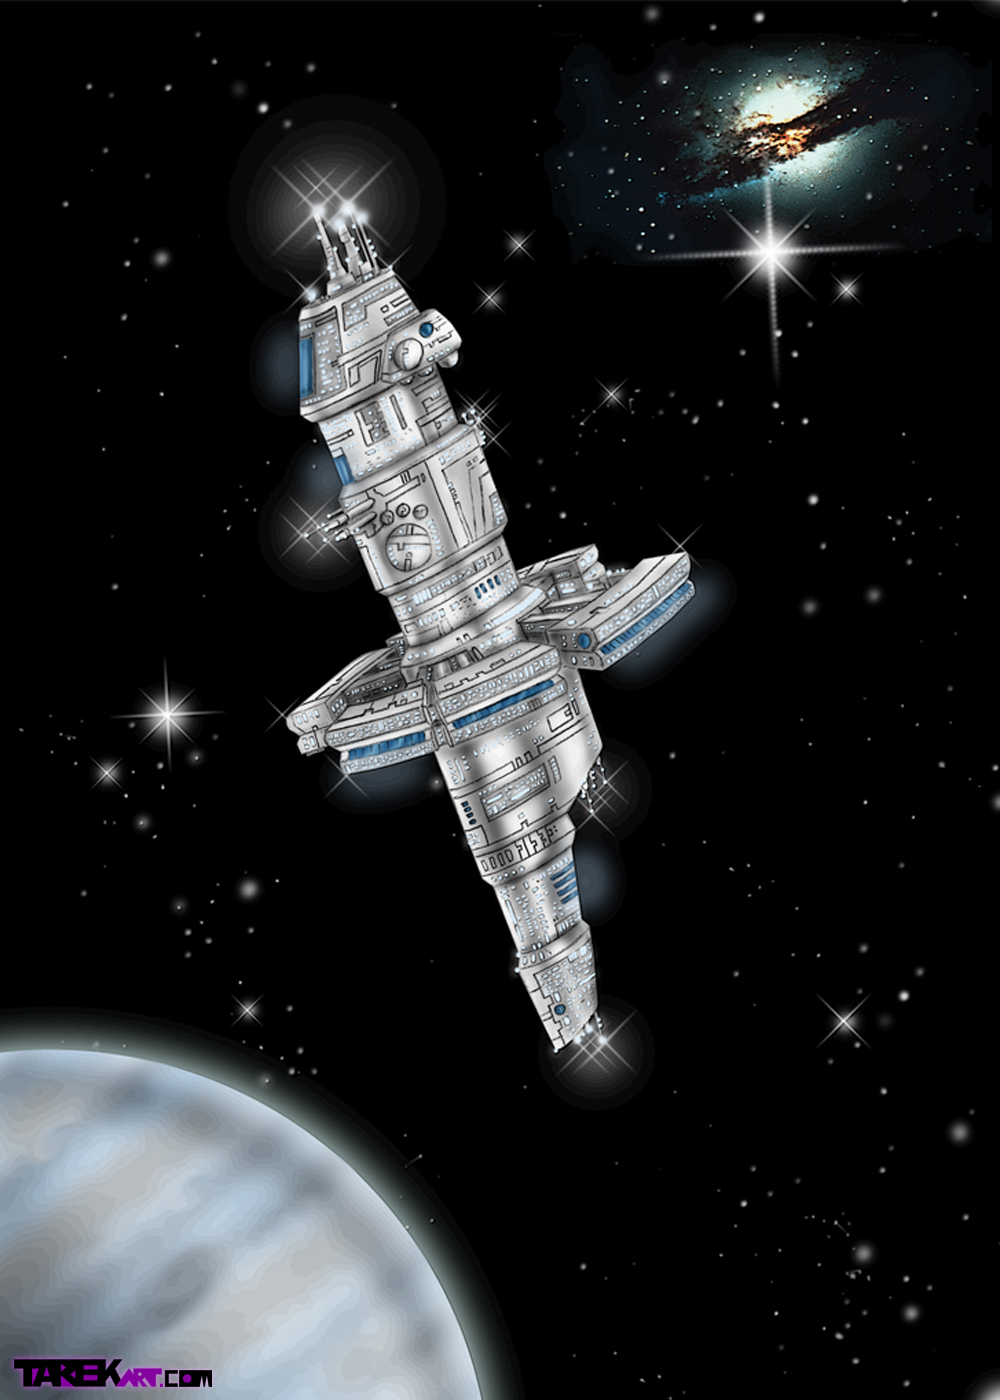 prison sci fi space station - photo #23